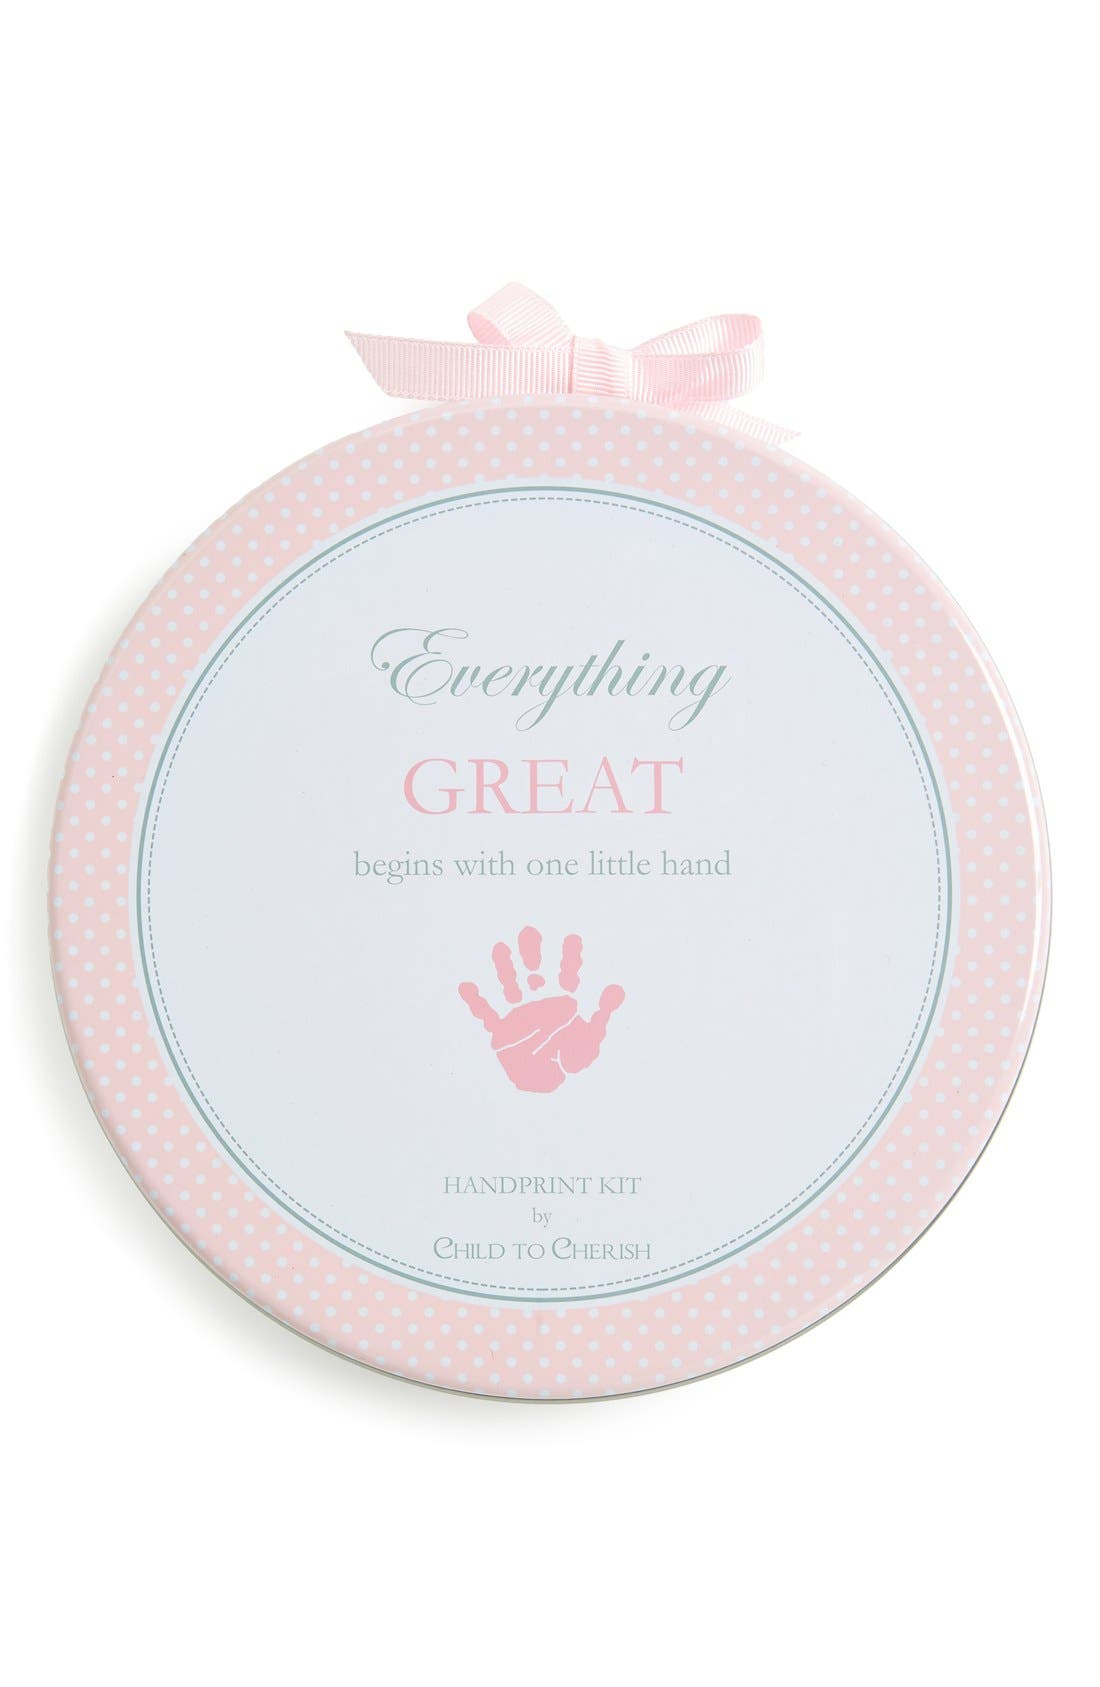 Child to Cherish Handprint Kit